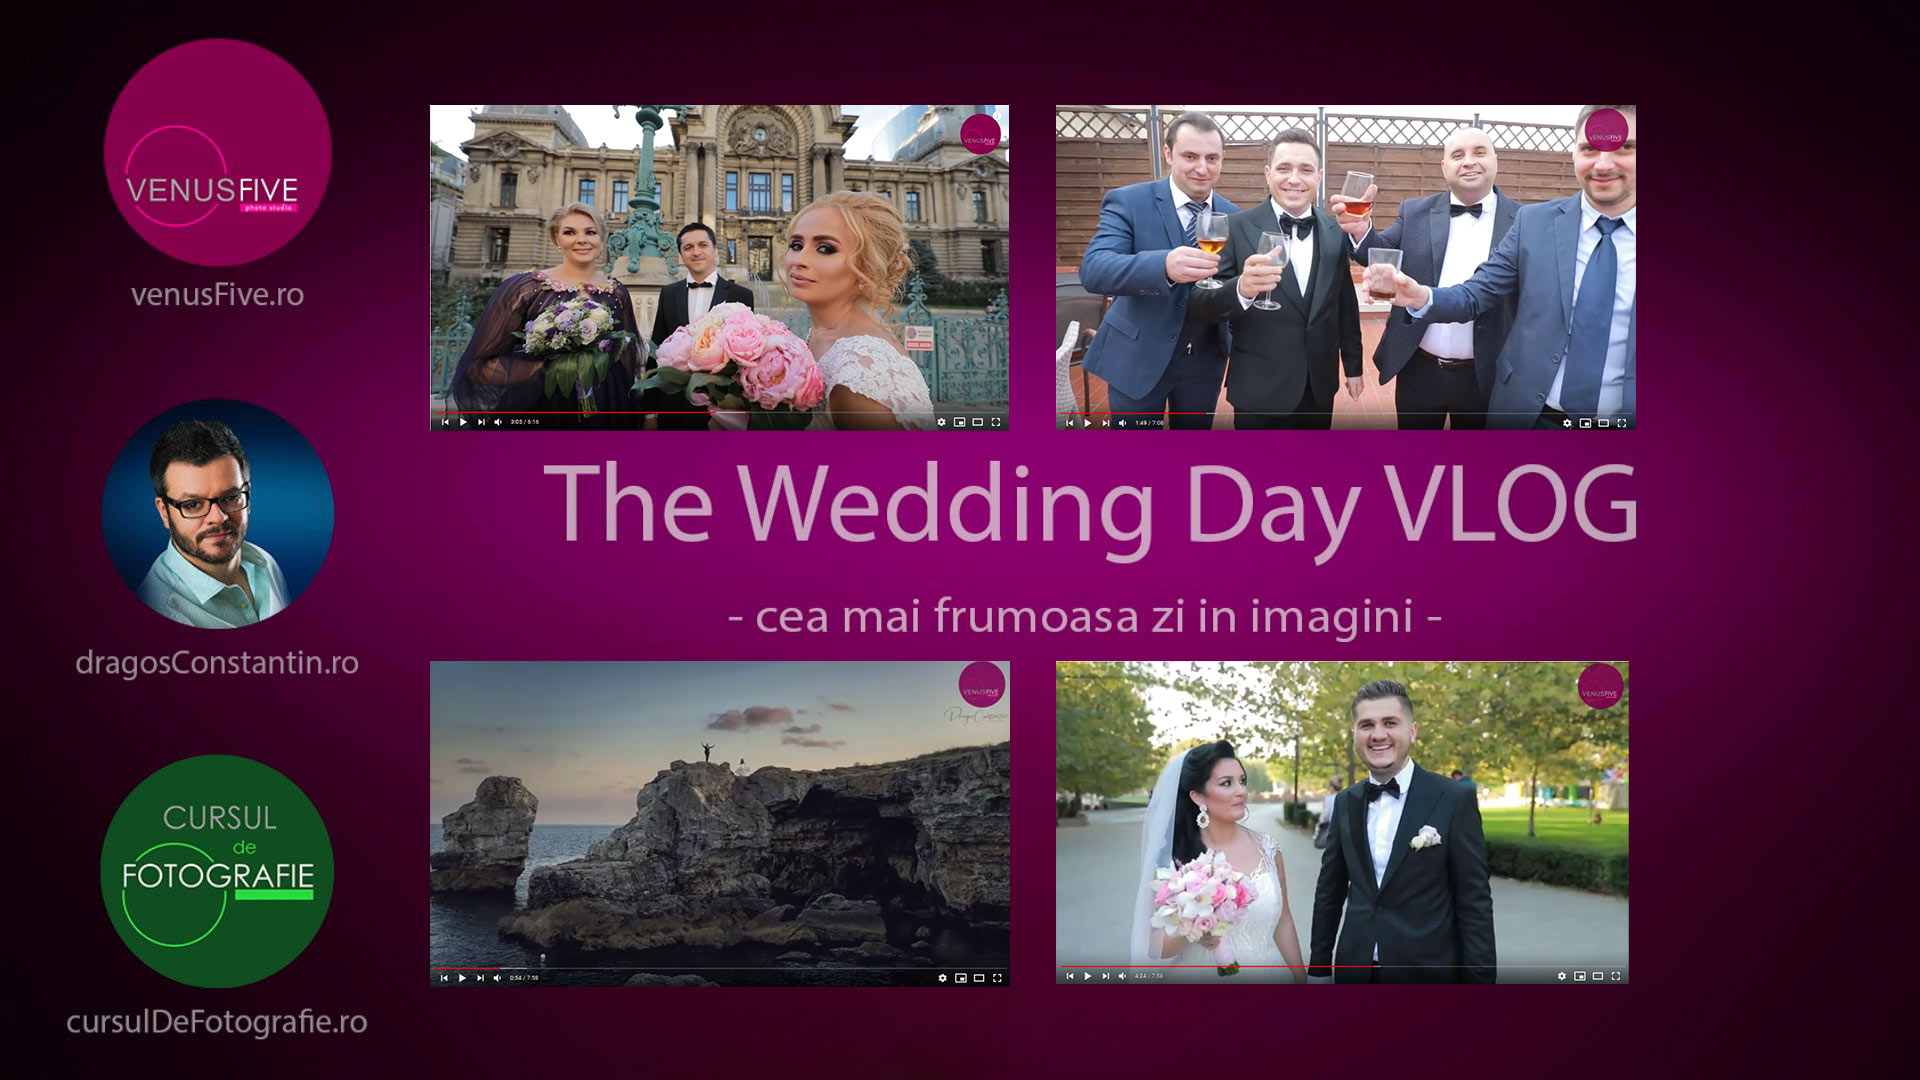 Vlog in ziua nuntii - The Wedding Day Vlog